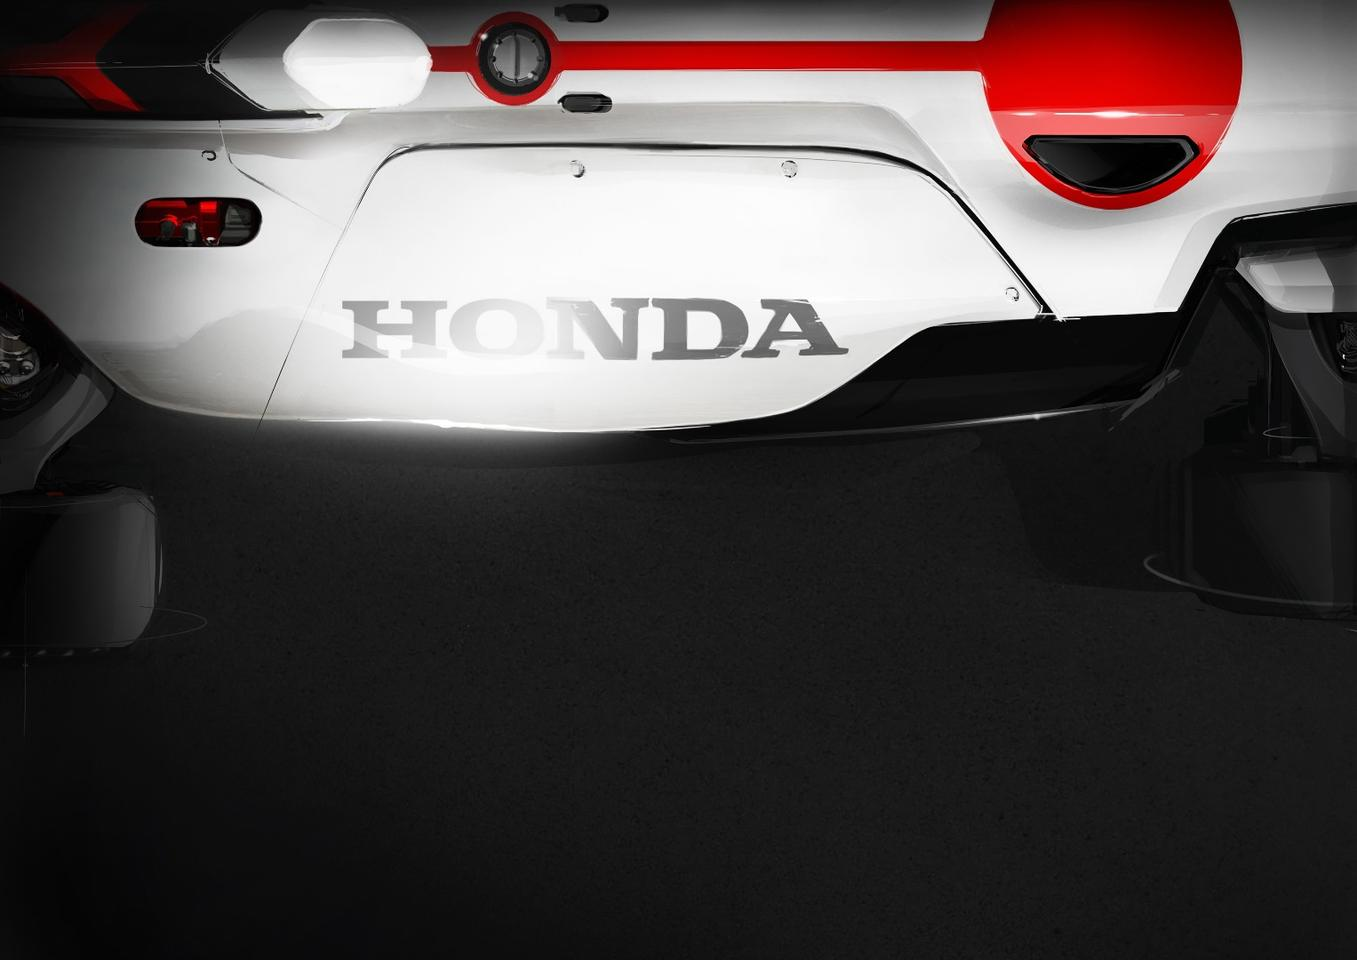 Honda Project 2&4 combines the company's automotive expertise with a championship winning V4 motorcycle engine